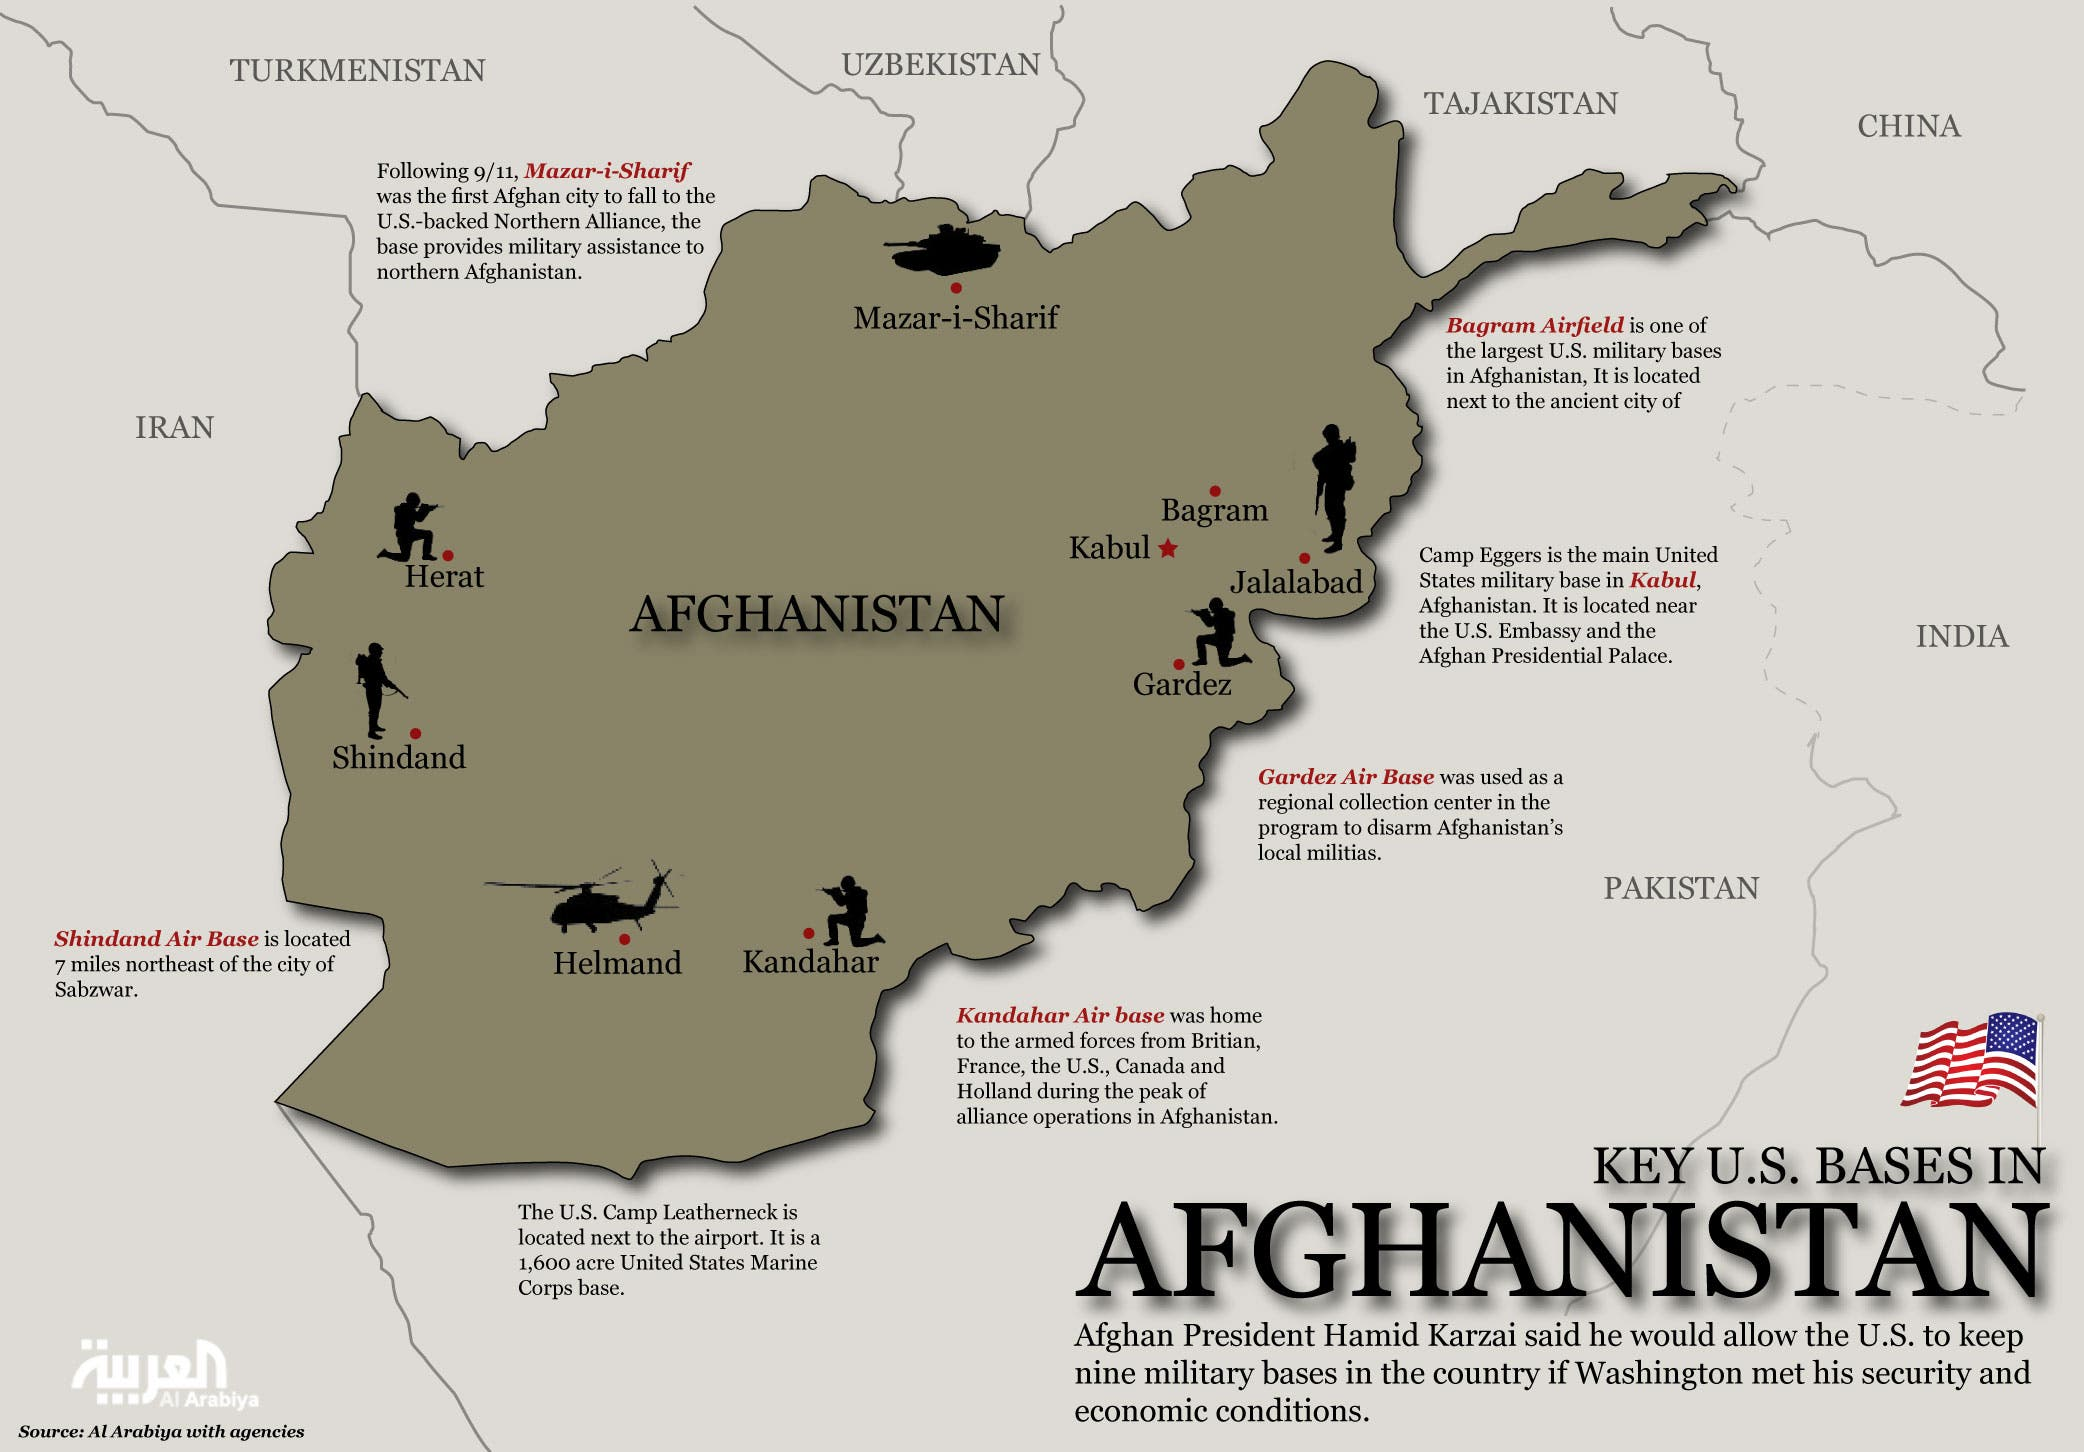 US Wants To Keep Nine Bases In Afghanistan Says Karzai Al - Us military bases in afghanistan 2017 map